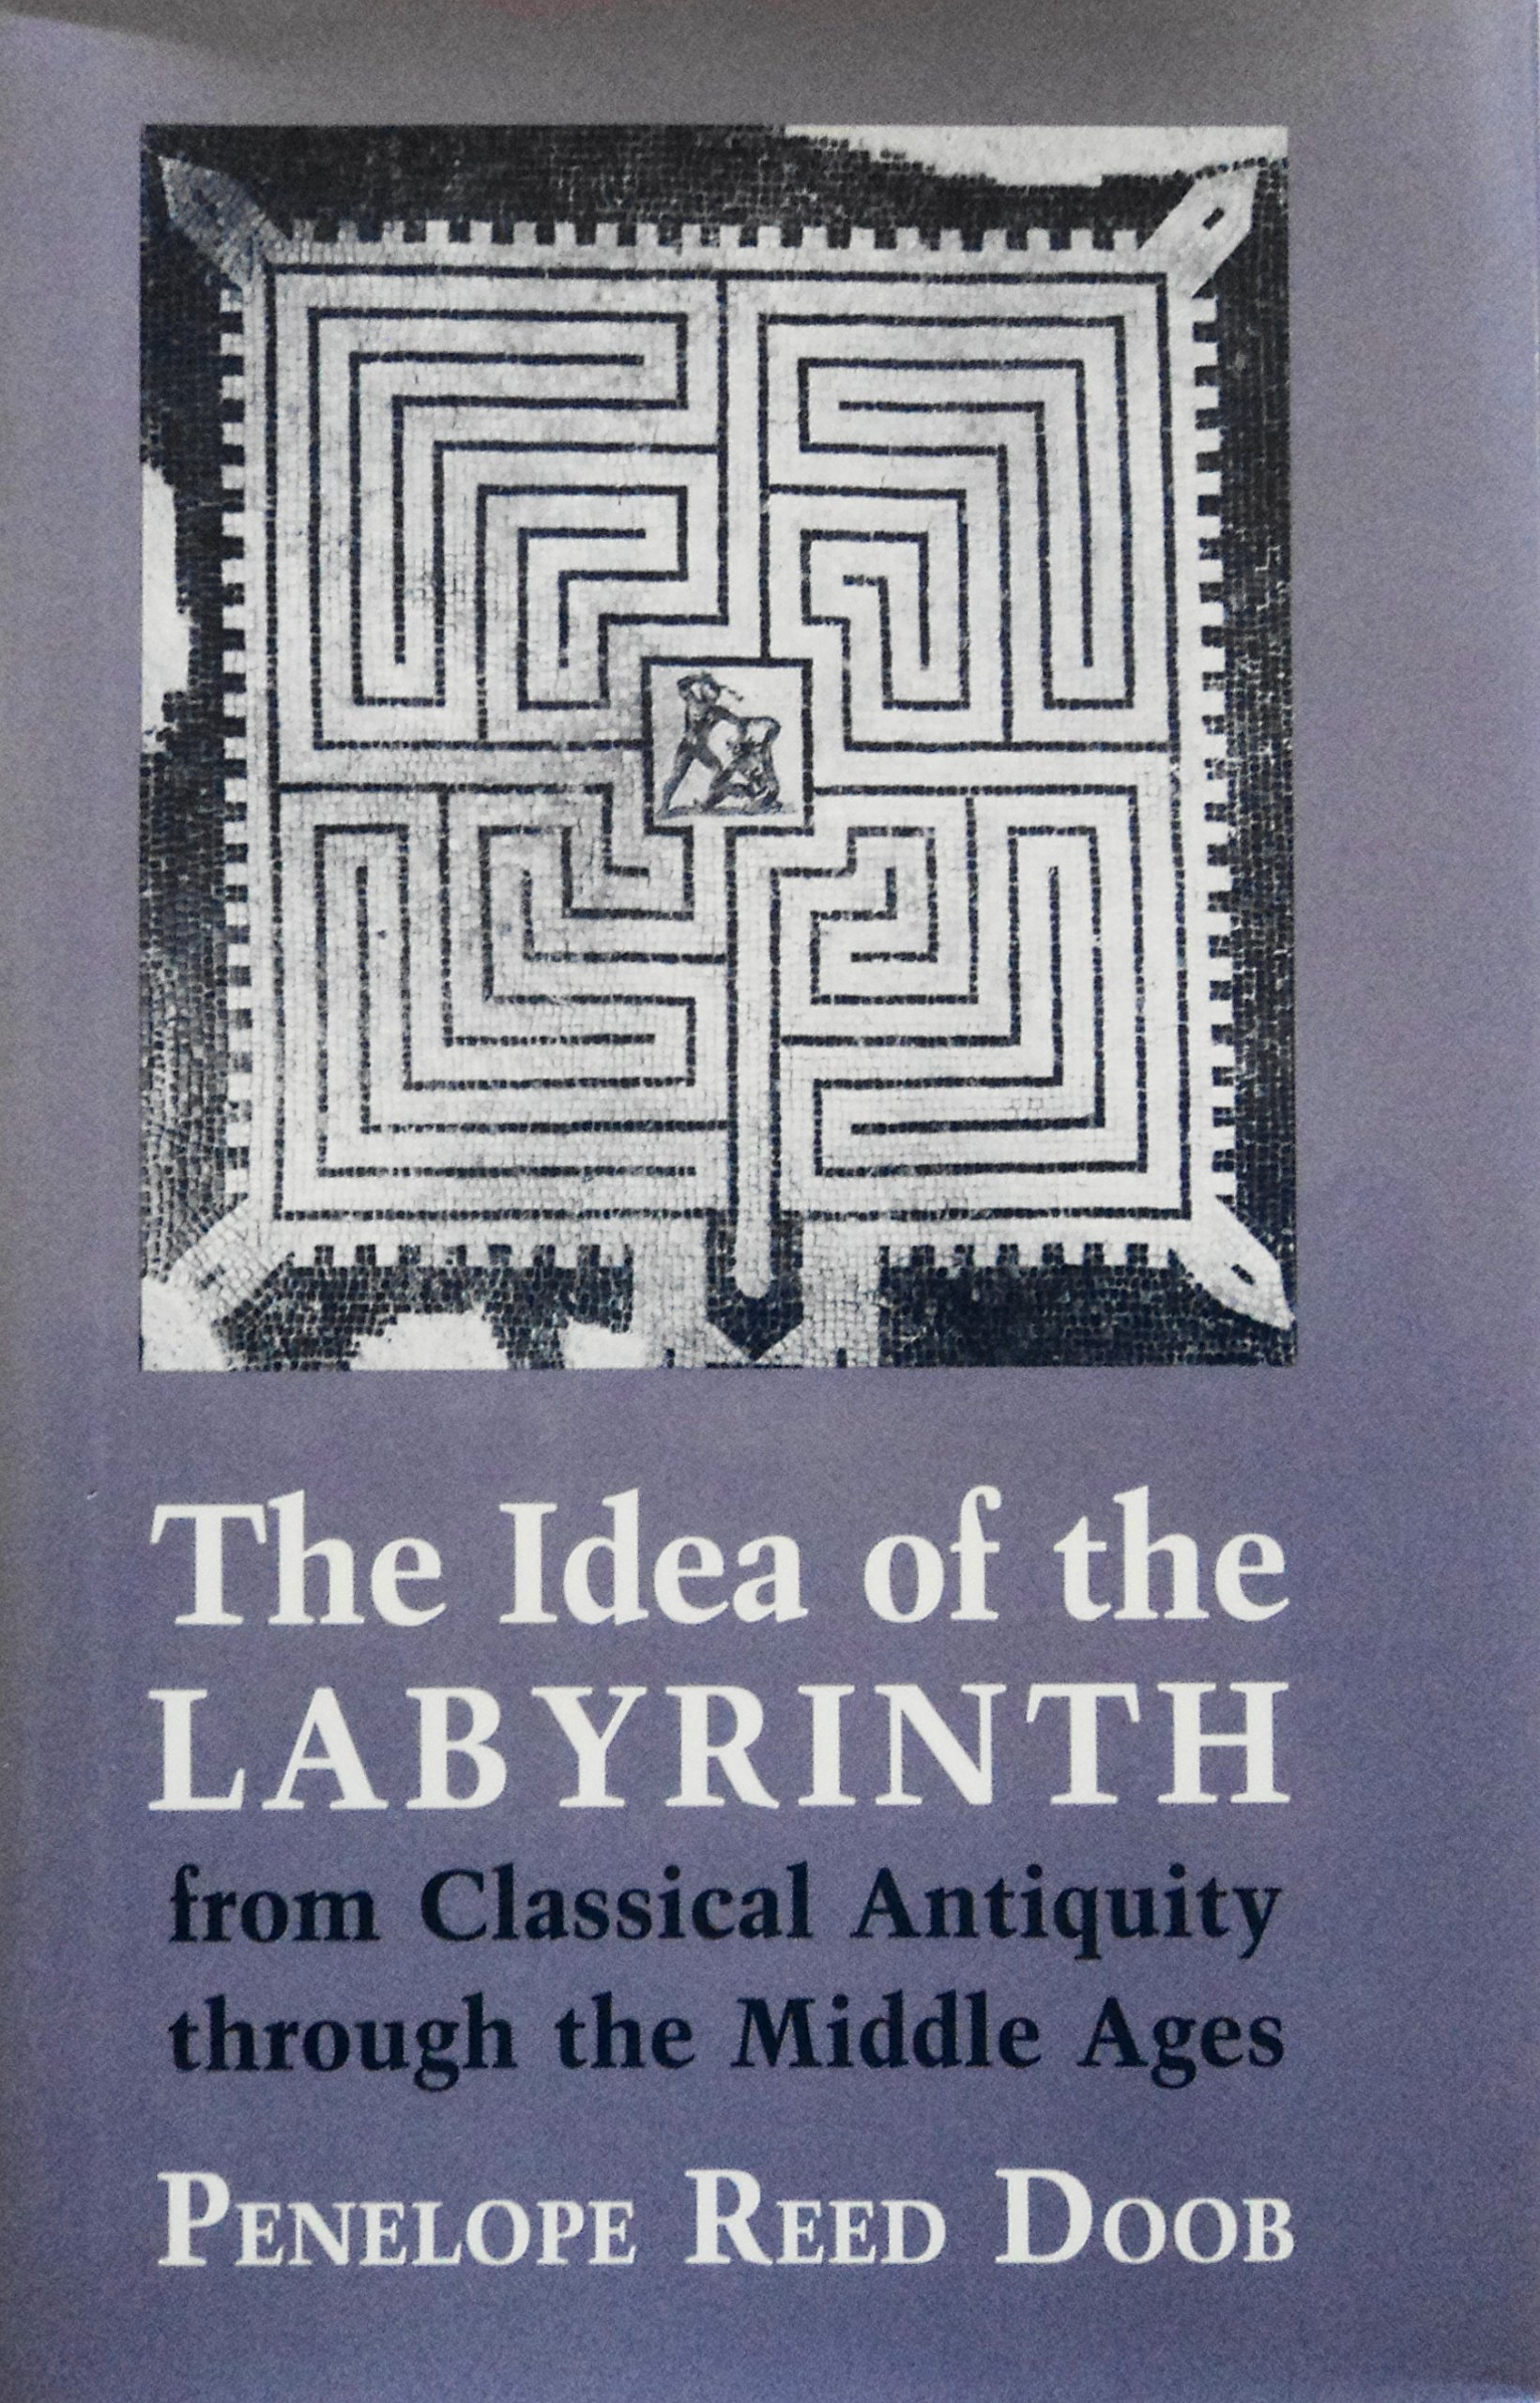 The Idea of the Labyrinth from Classical Antiquity Through the Middle Ages